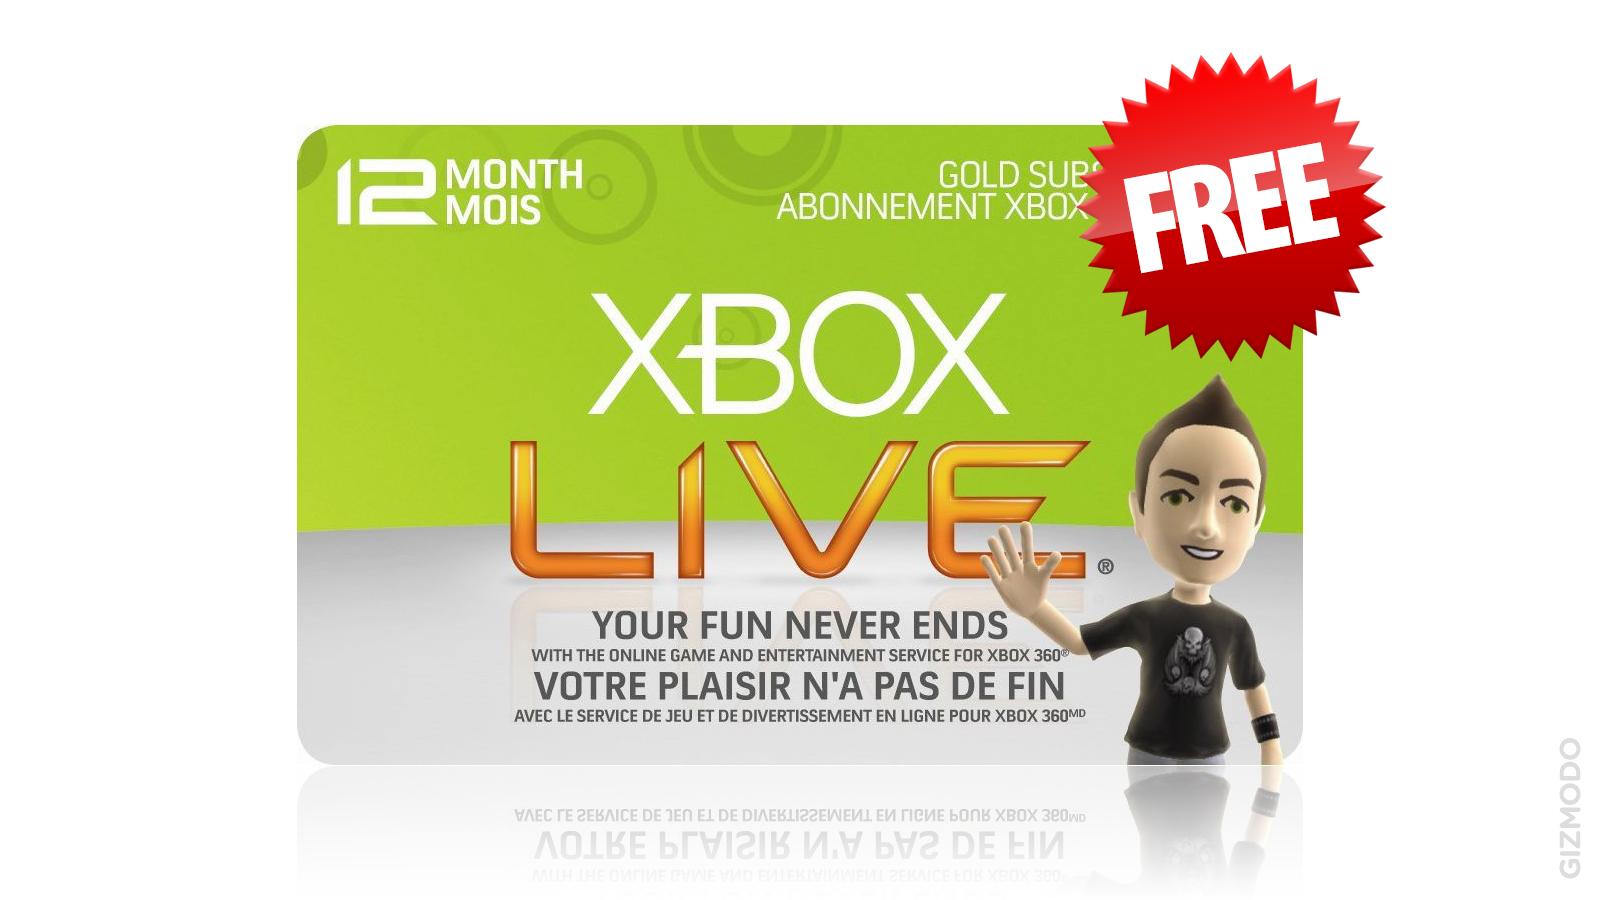 It's Time For Xbox Live Gold To Be Free | Kotaku Australia